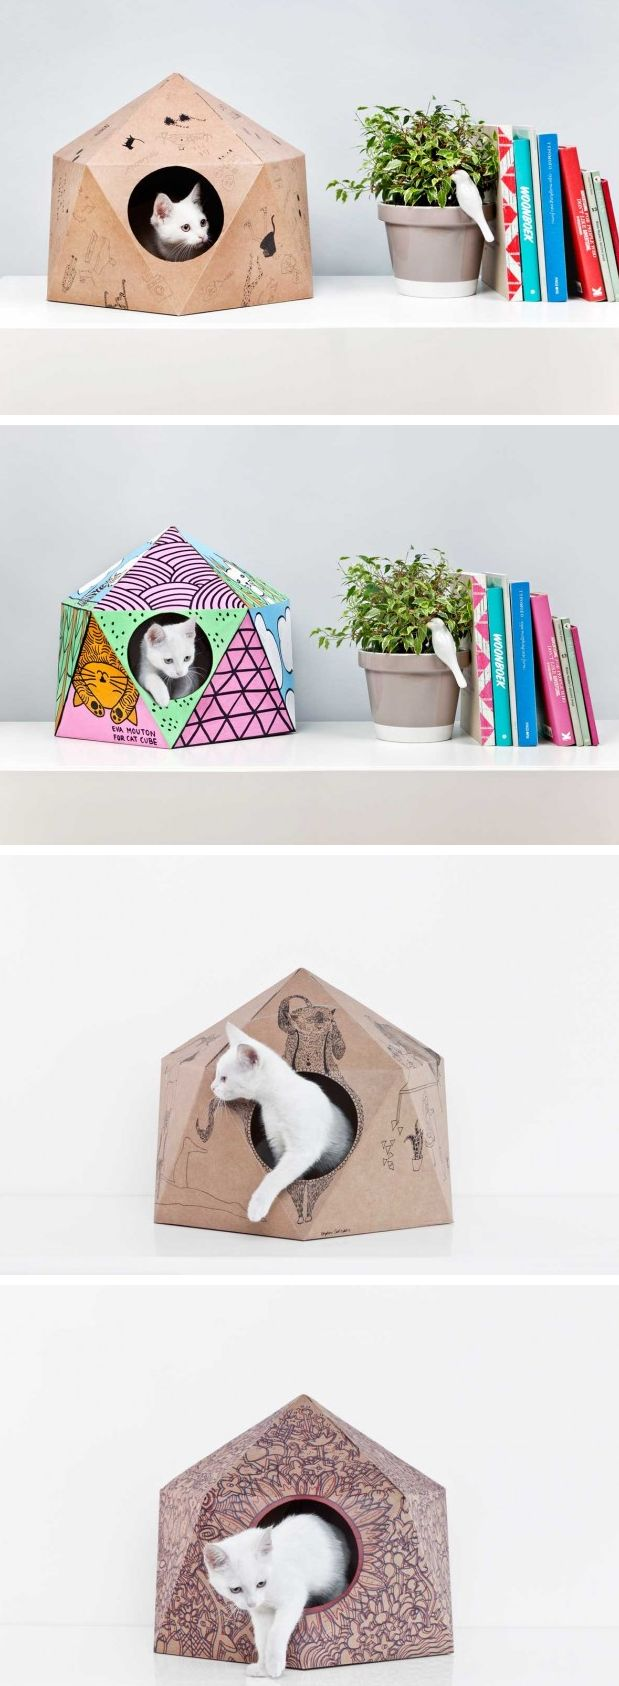 Delphine Courier has designed the CatCube, a geometric nest made from cardboard that is designed and manufactured in Belgium.